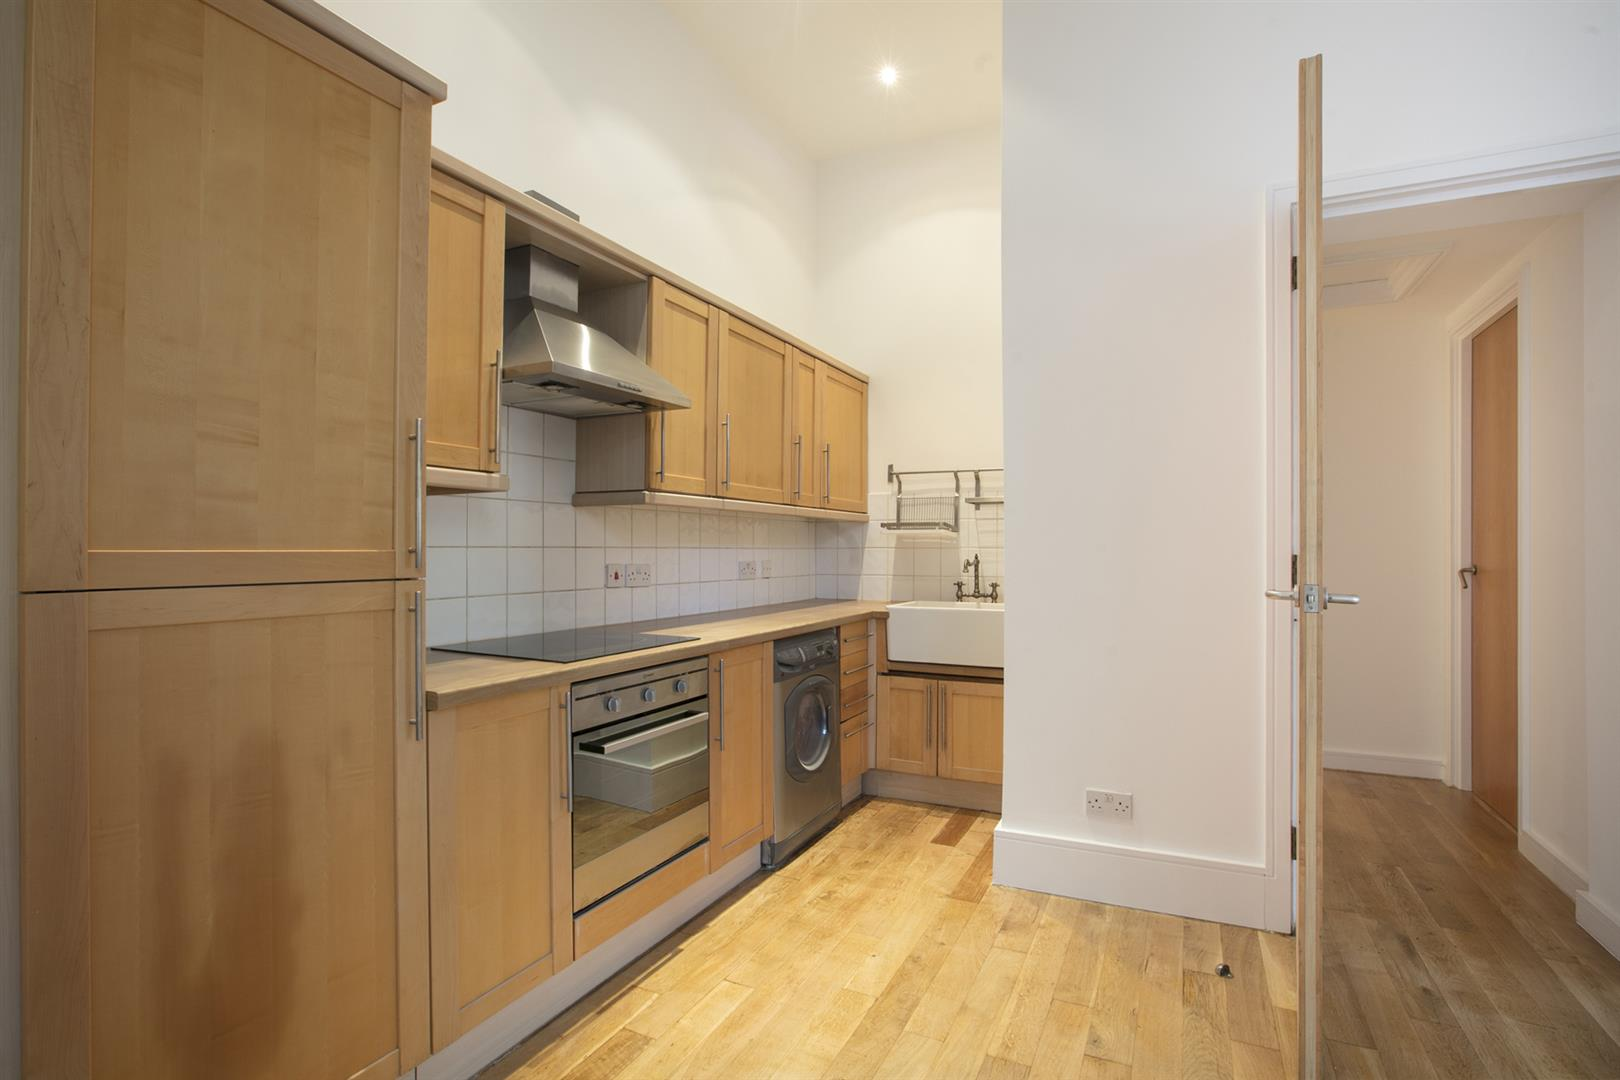 Flat - Conversion Sale Agreed in St. Giles Road, Camberwell, SE5 470 view3